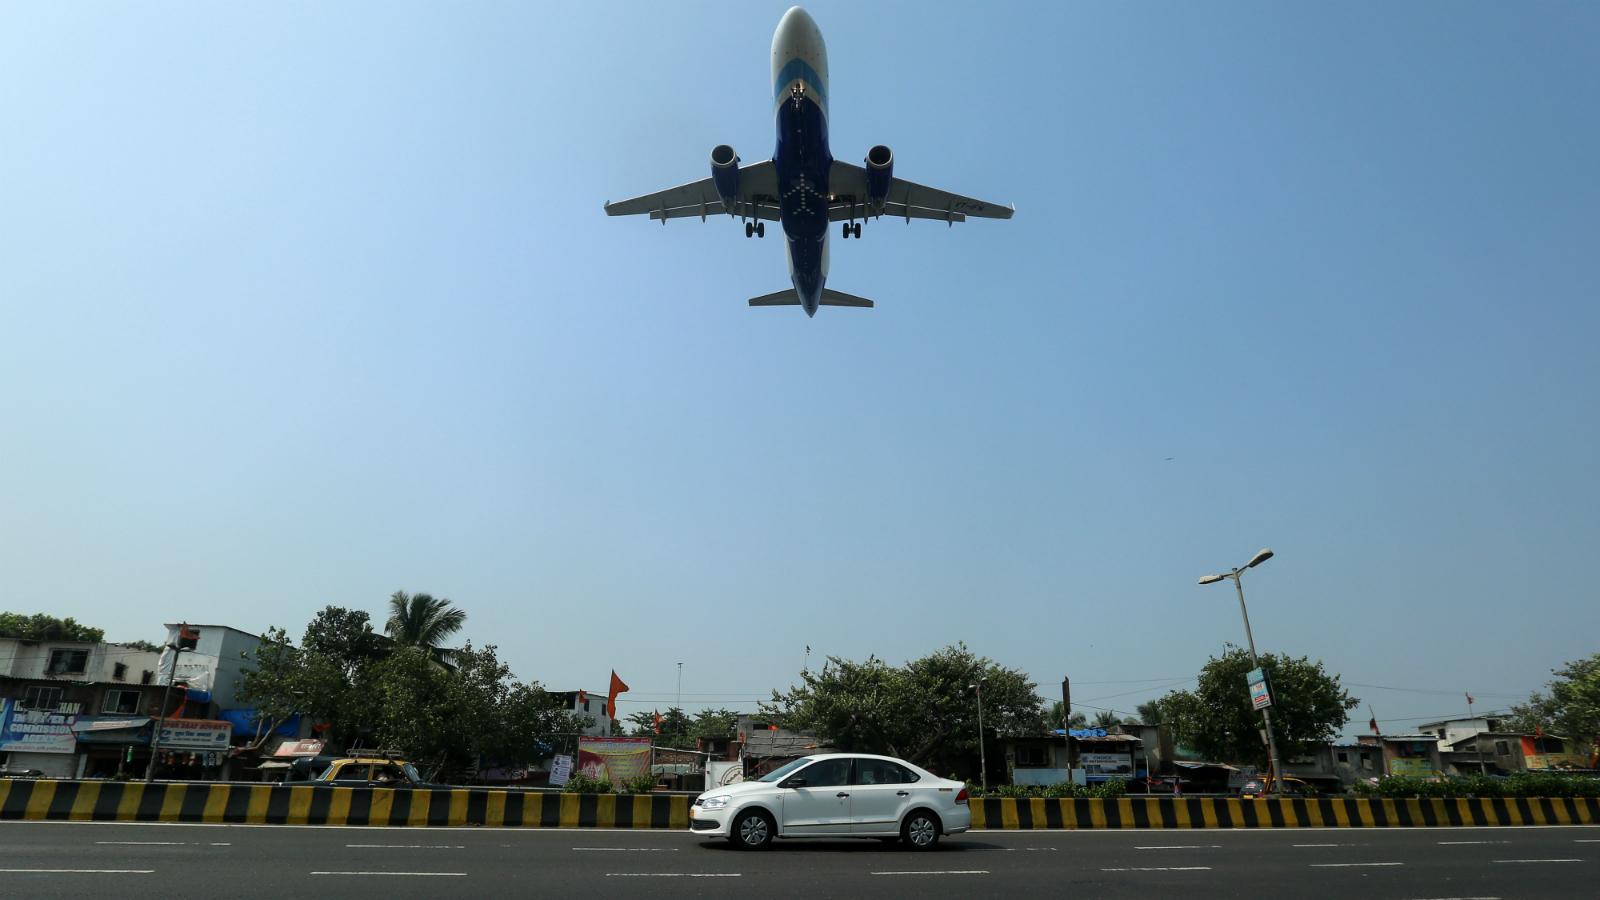 An Airbus A320-232 aircraft of Indian carrier IndiGo landing at the Chhatrapti Shivaji International Airport in Mumbai, India, 01 November 2015. India's budget airline IndiGo made a strong showing on its debut on the stock exchange 10 November 2015 with shares of its parent company InterGlobe Aviation Limited opening about 12 per cent higher than its issue price. The company received a robust response to its initial public offering (IPO) in October, raising 30.1 billion rupees (453.52 million dollars) with shares being oversubscribed by six times, mainly through foreign institutional investors. Founded in 2006, no-frills IndiGo is India's biggest airline by market share at 33.8 per cent.